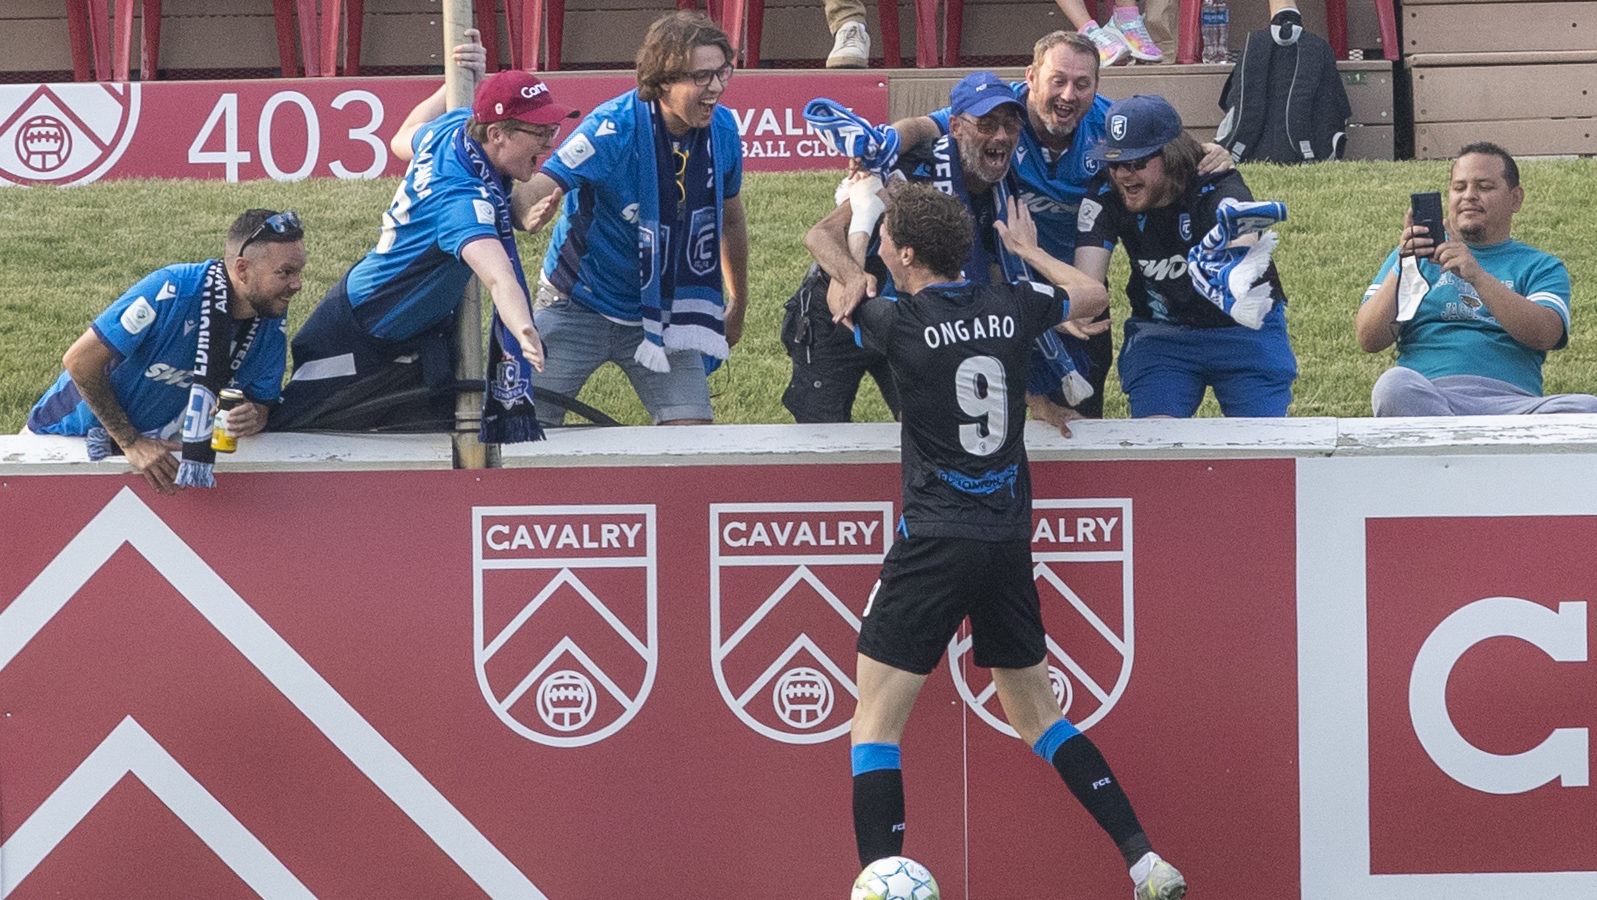 FC Edmonton attacker Easton Ongaro celebrates with FC Edmonton's travelling supporters after scoring the games' first goal in the match betweenin the match Cavalry FC vs FC Edmonton at ATCO Field, Calgary, Alberta, Canada - Aug 3, 2021 (Tony Lewis/CPL)